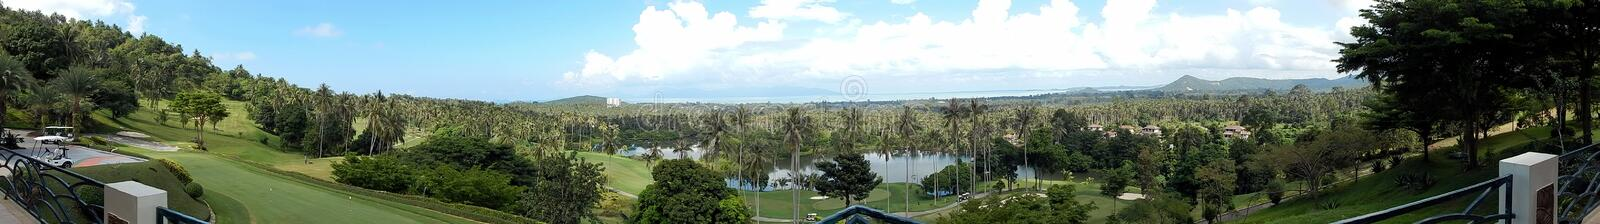 Samui, Thailand, a panoramic view from the restaurant of the Golf club, December 2013, horizontally. stock photo